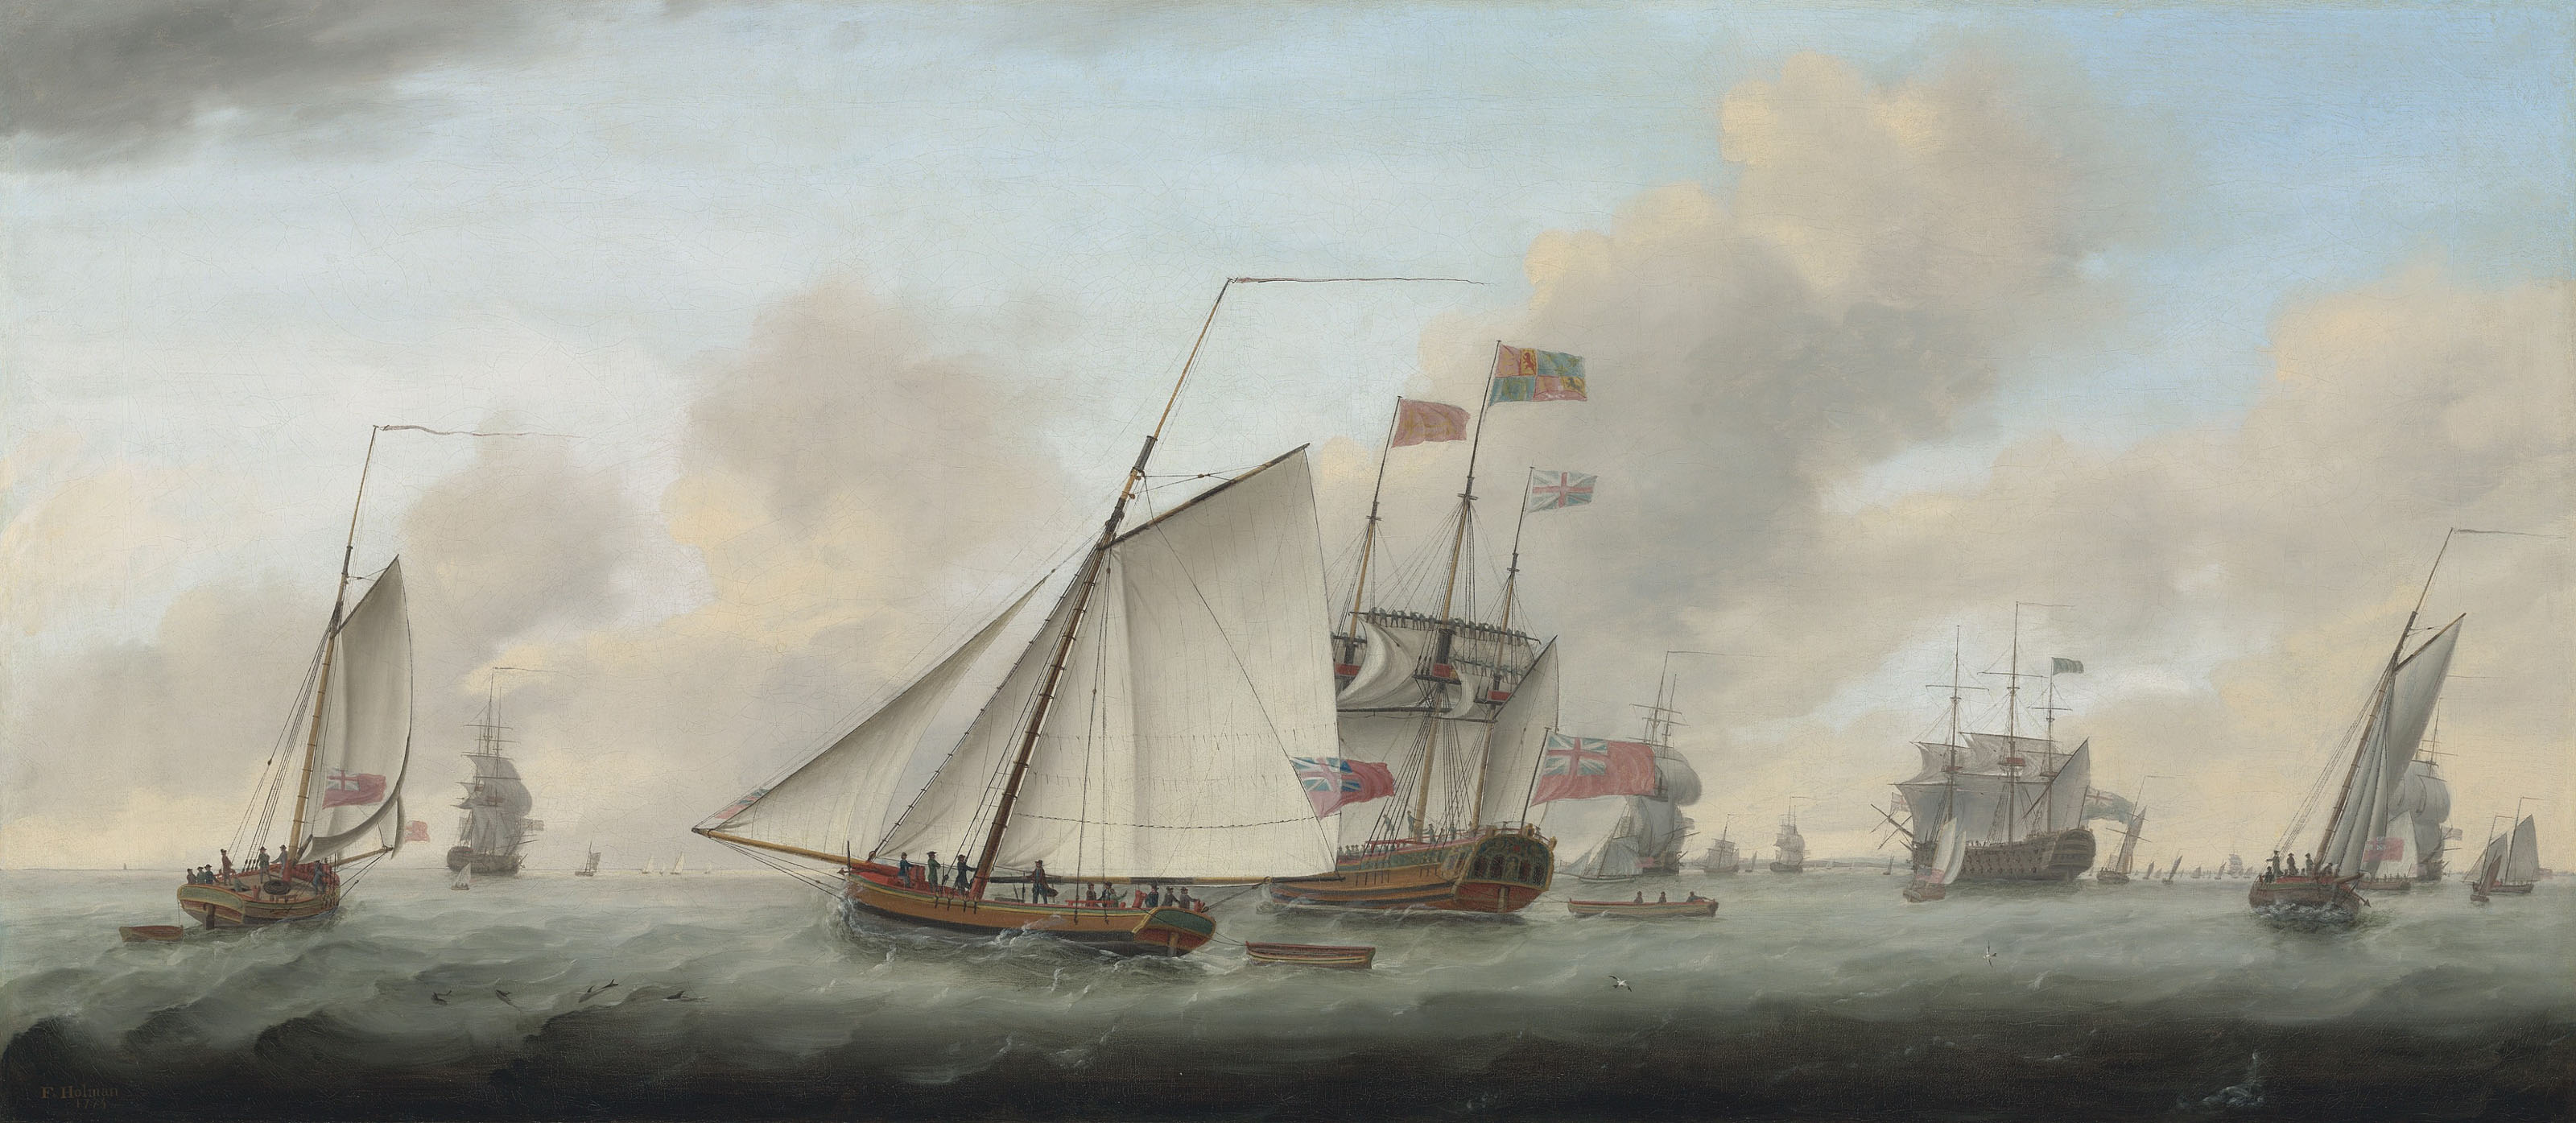 The Royal Yacht Princess Augusta with His Majesty King George III on board, reviewing his fleet at Spithead on 25 June 1773